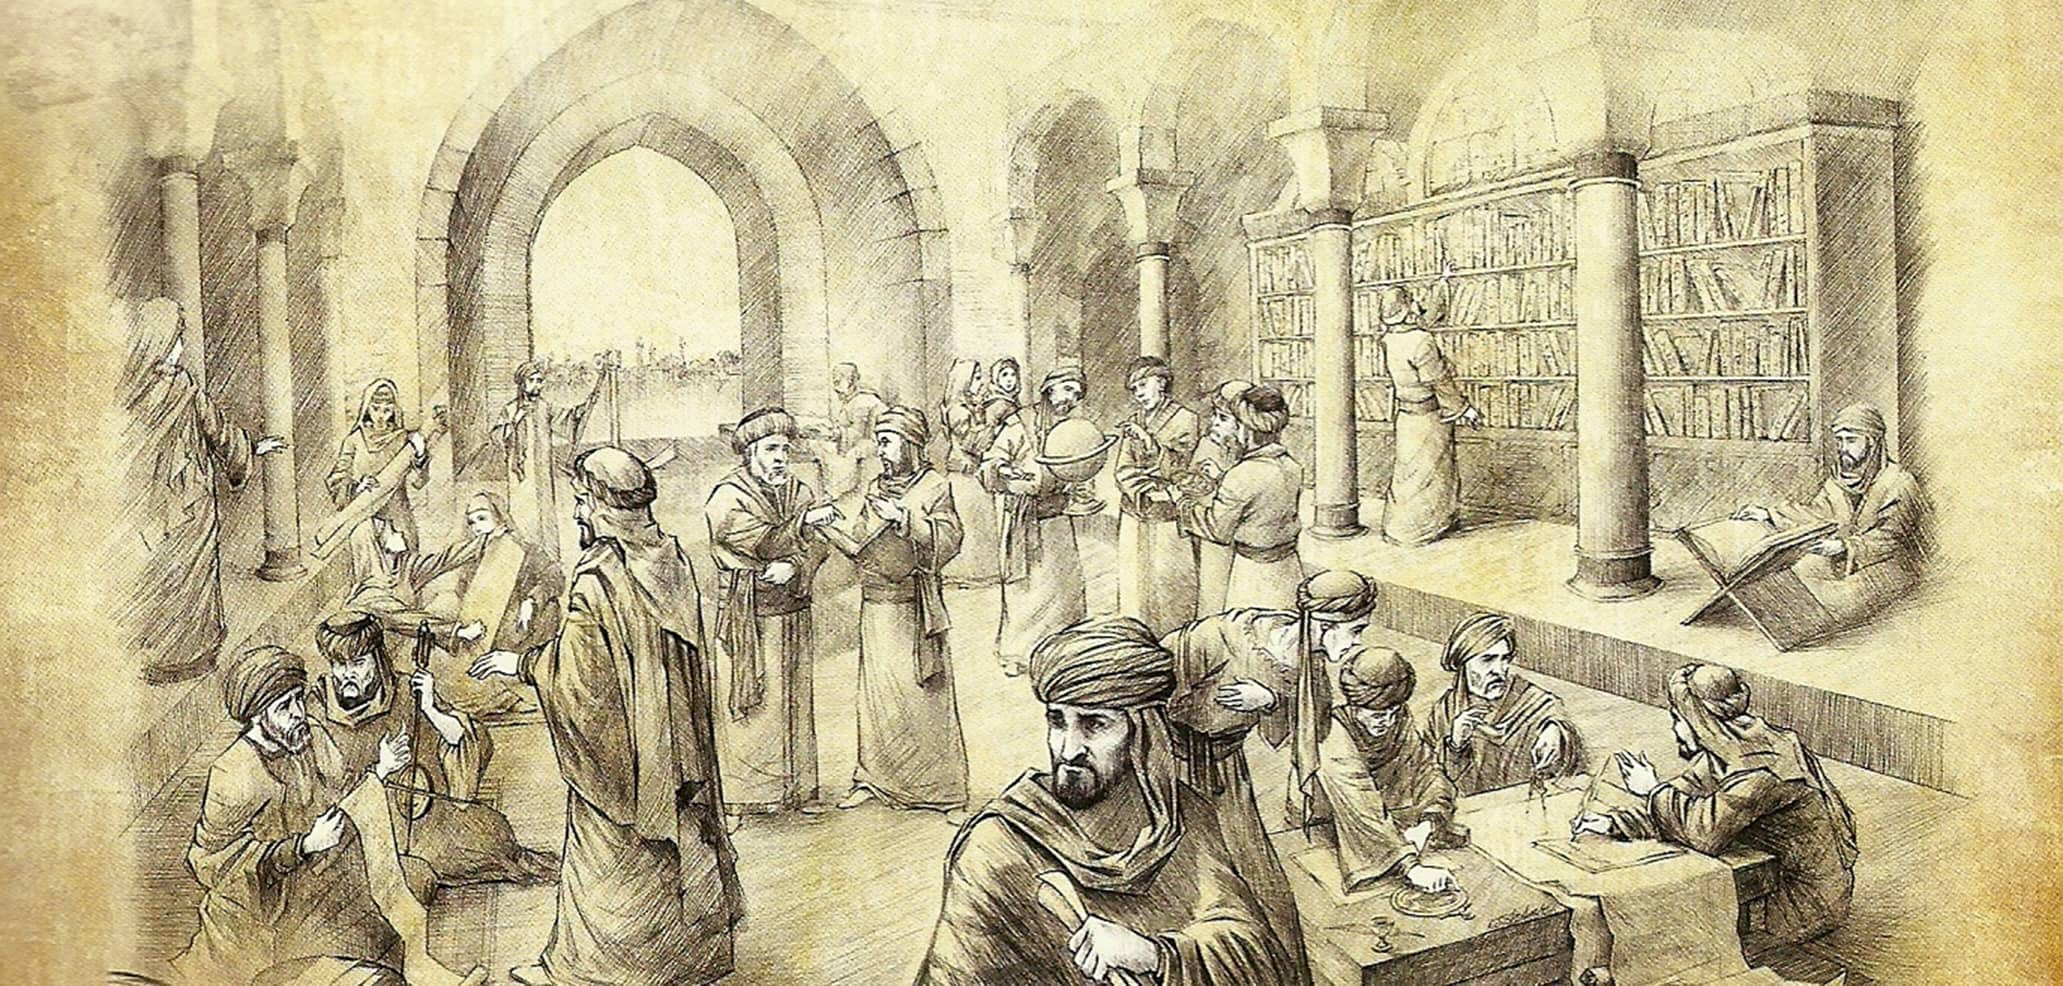 The House of Wisdom was a major intellectual center in Baghdad in the early years of Islam.